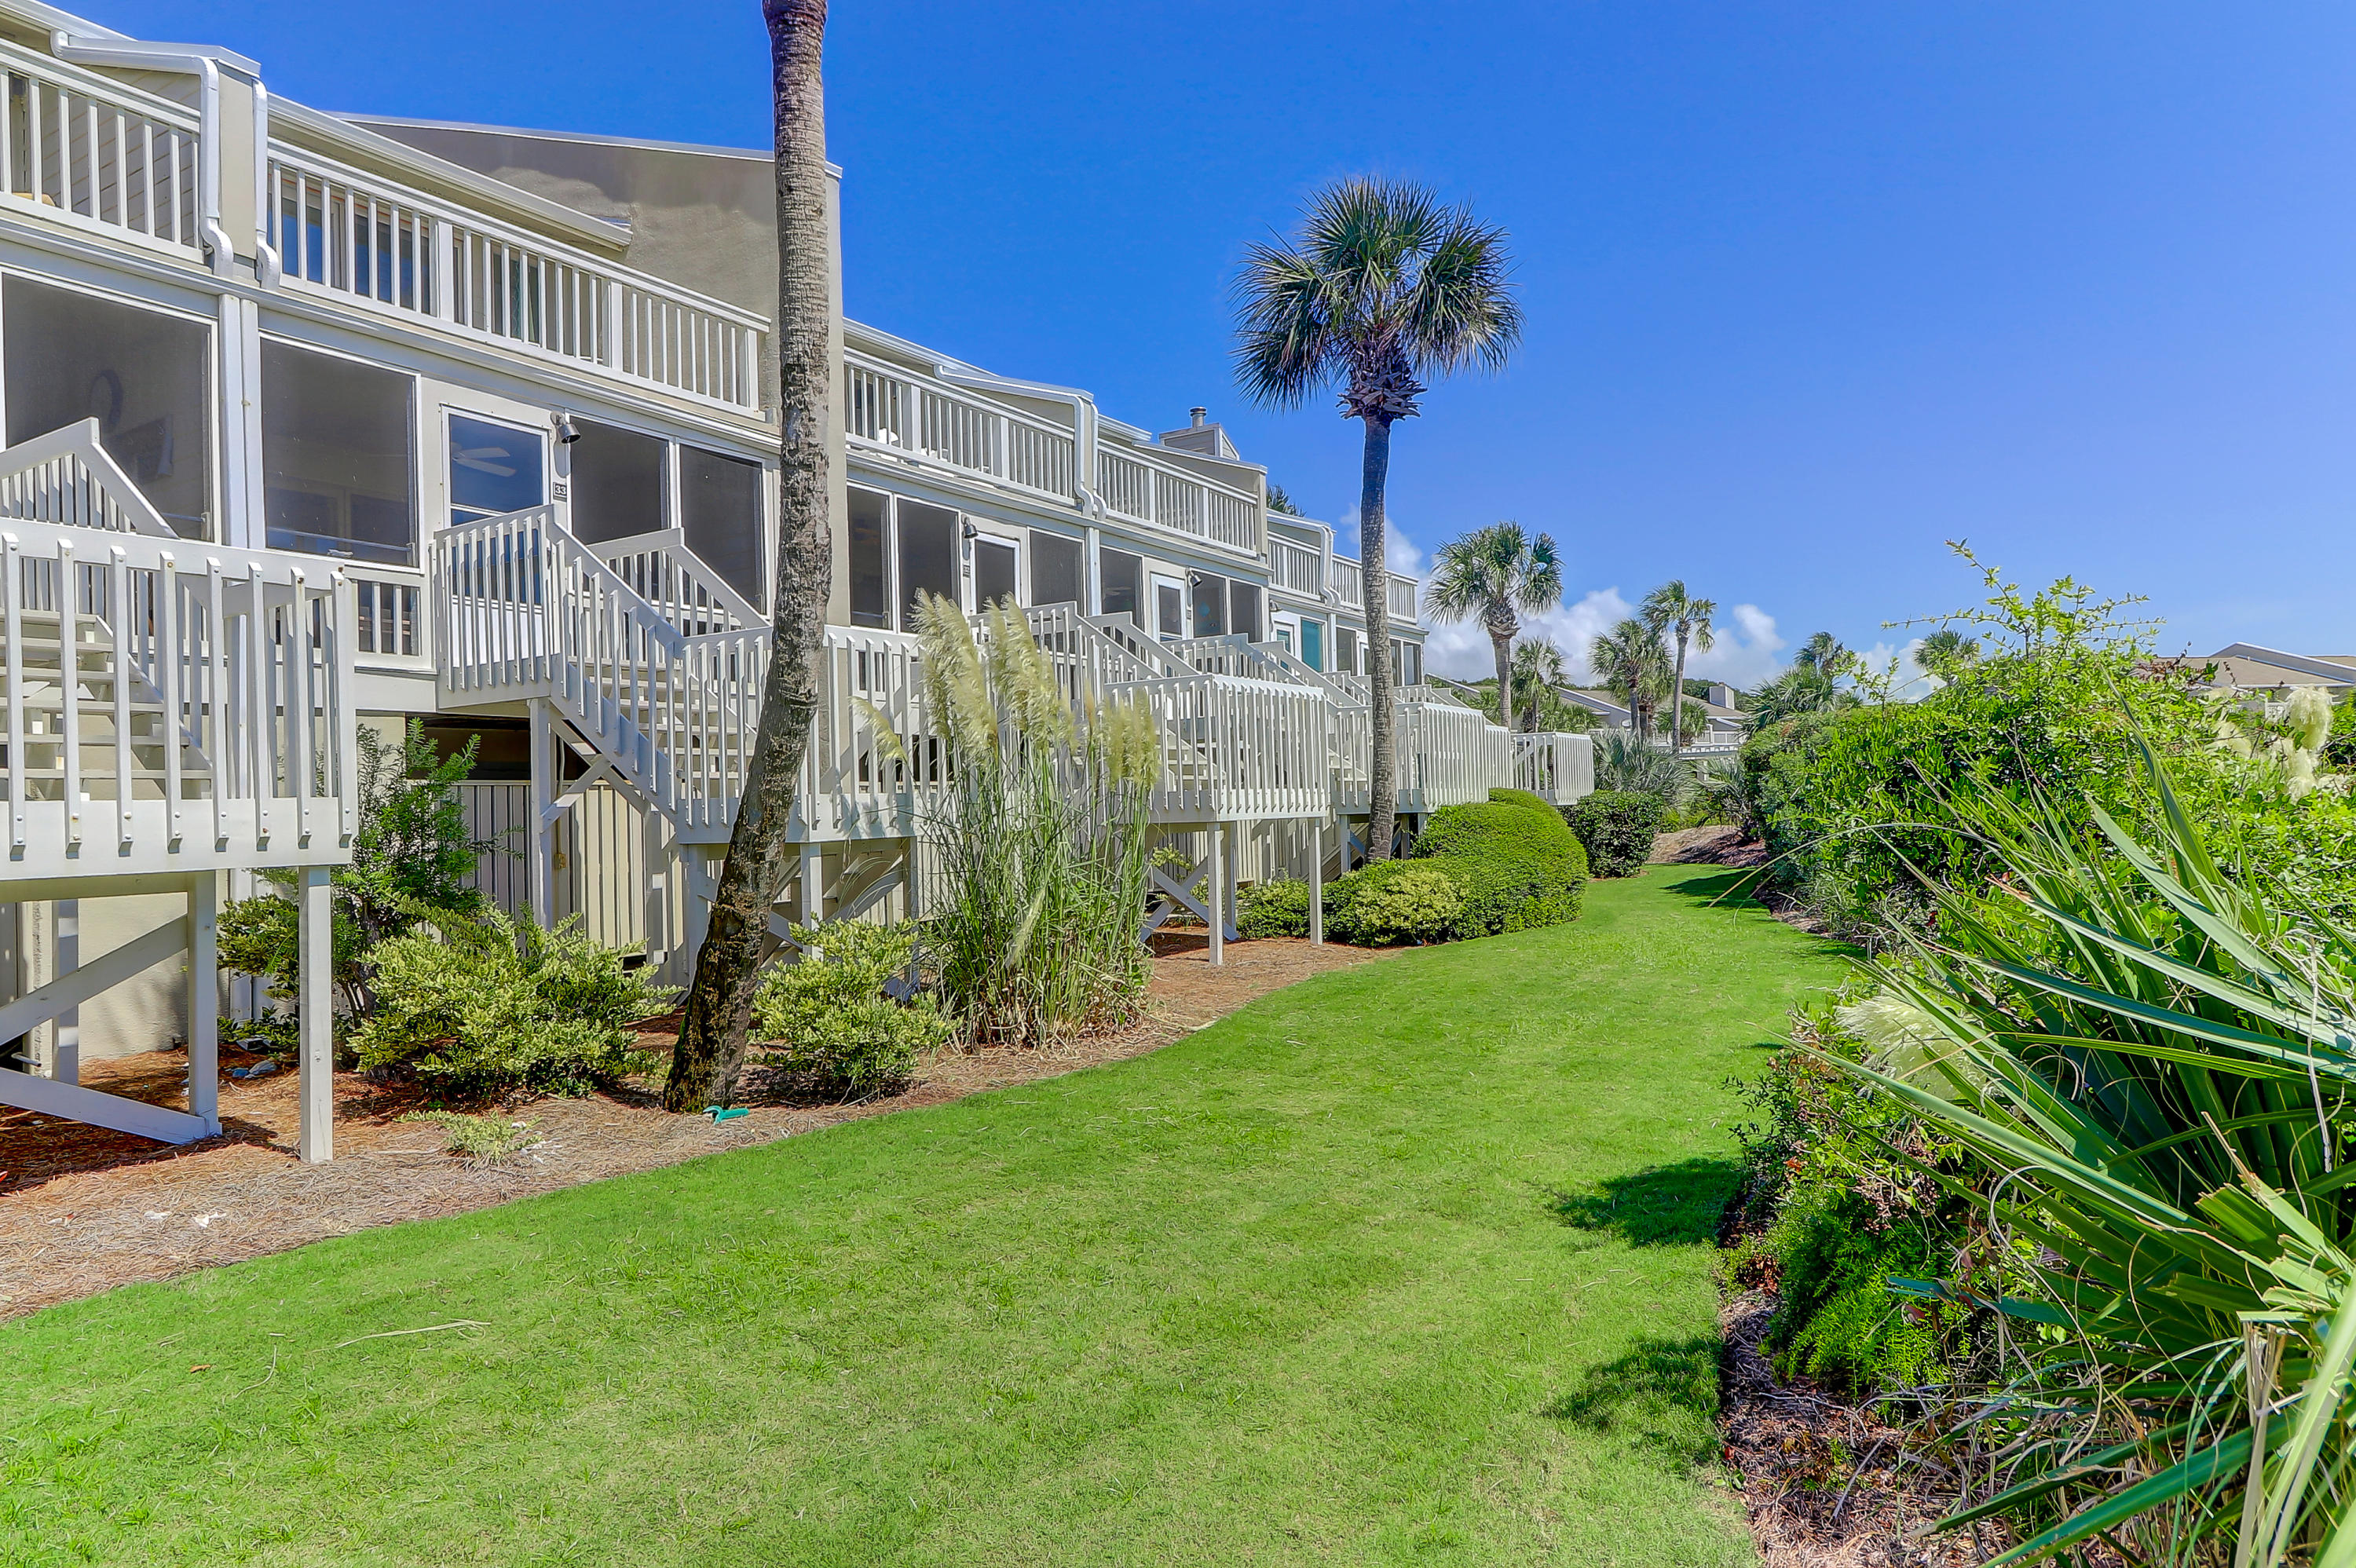 Beach Club Villas Homes For Sale - 33 Beach Club Villas, Isle of Palms, SC - 4